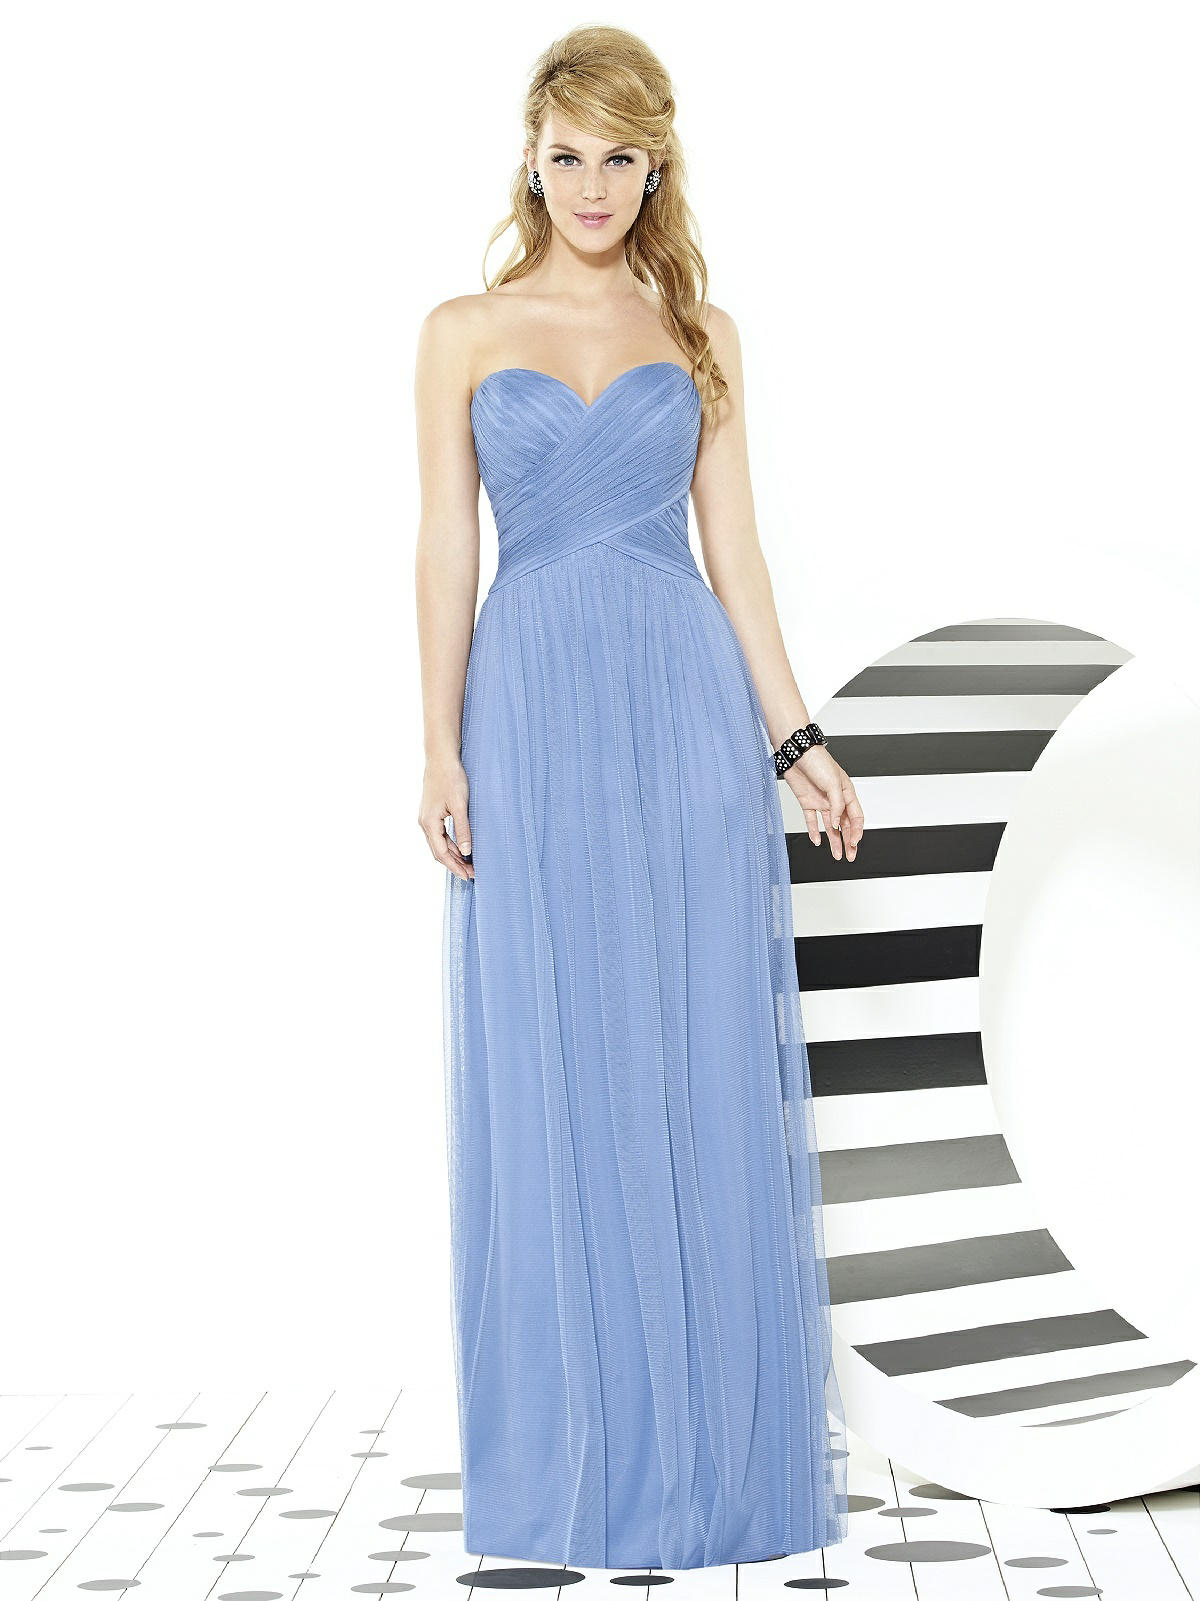 After Six Bridesmaid Dresses By Dessy - Wedding Guest Dresses